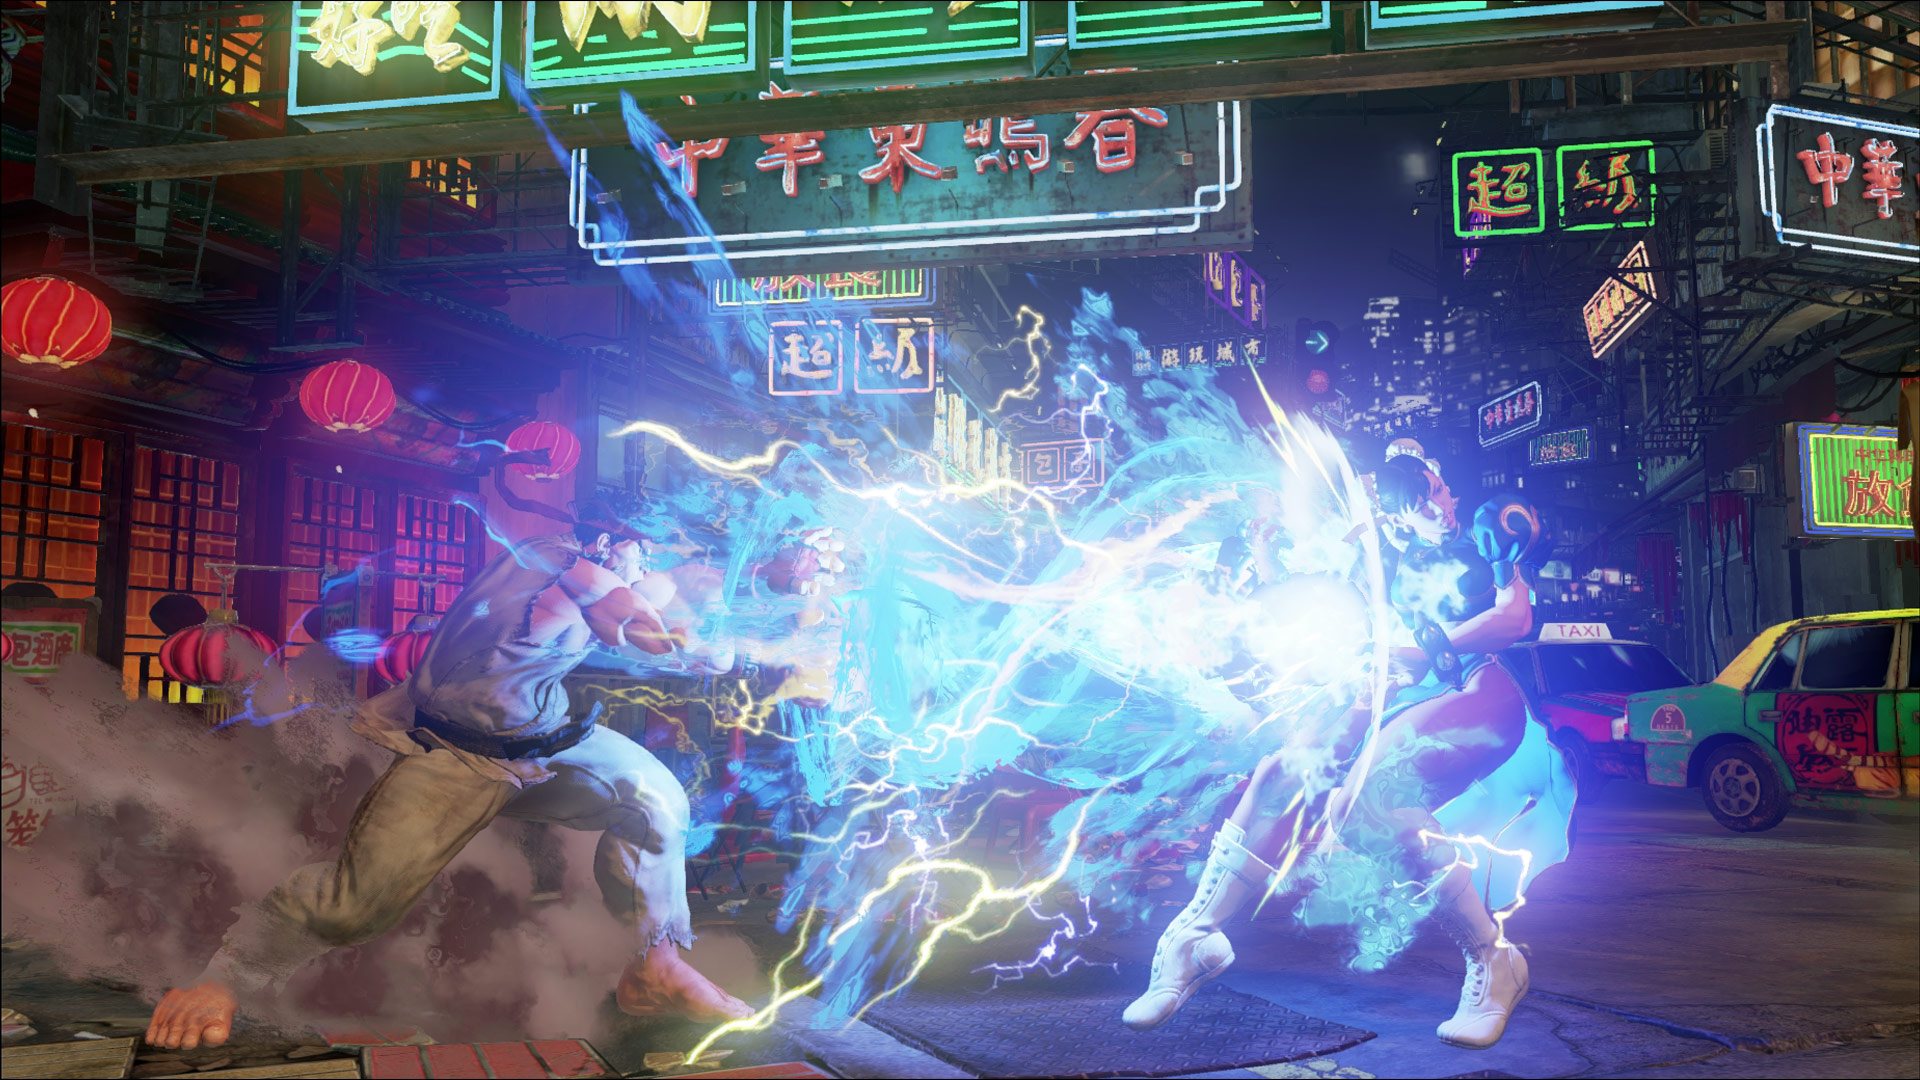 Street Fighter 5 high resolution screen shots, cover art and logo image #8